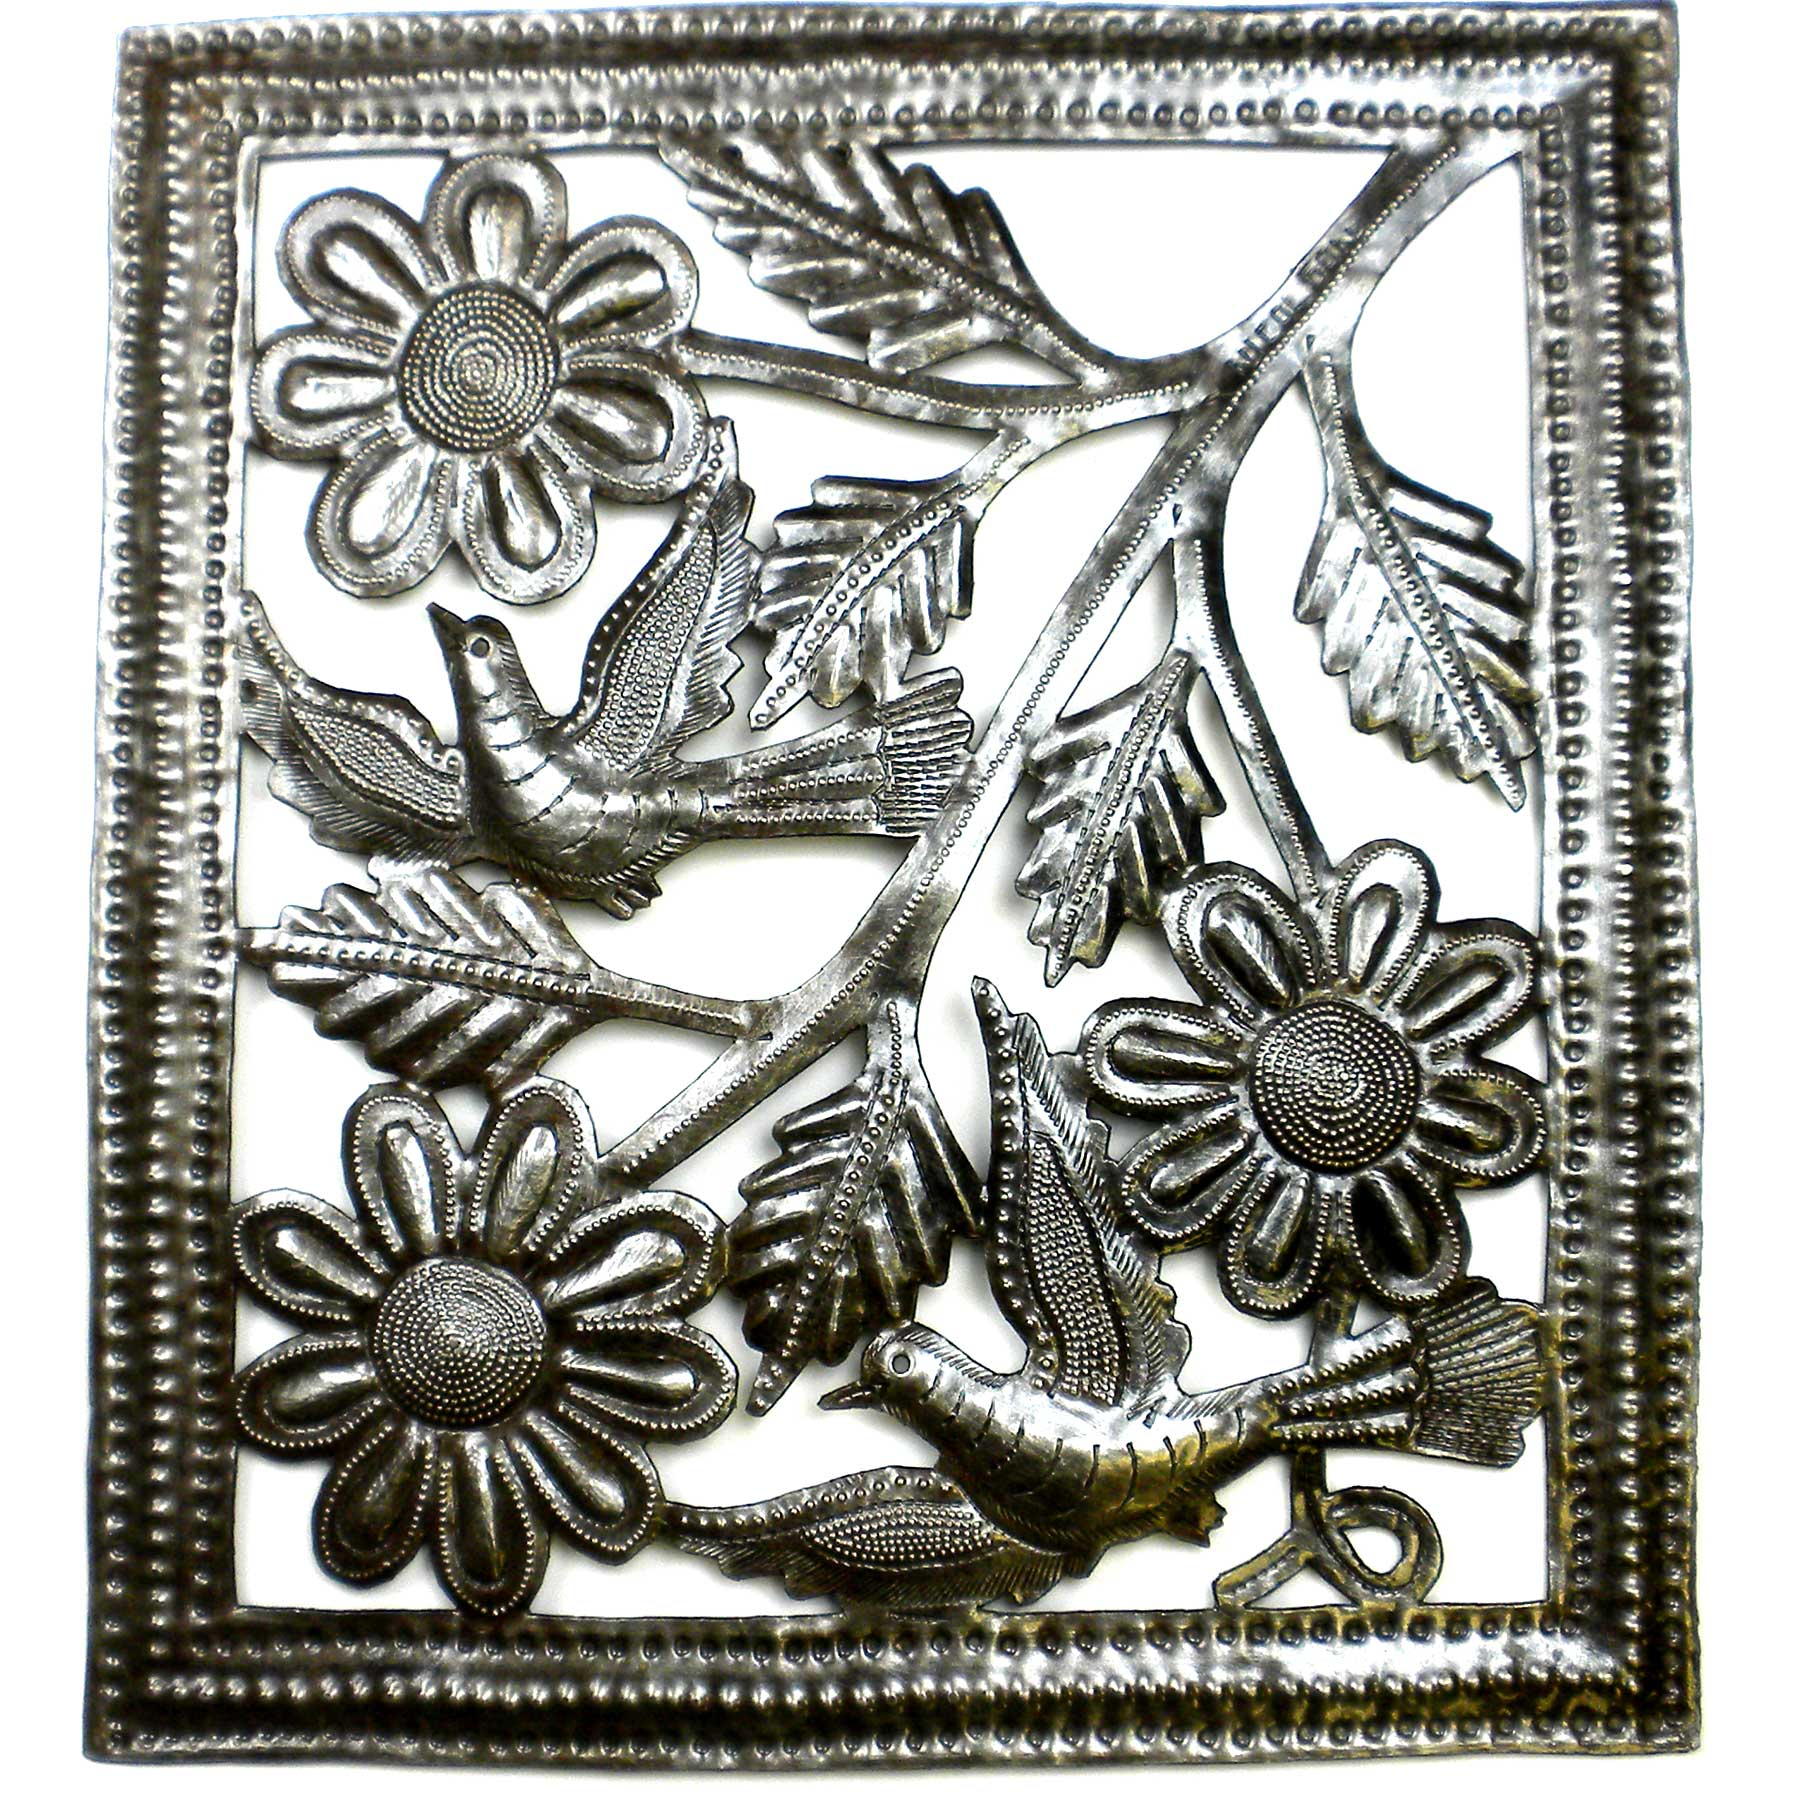 Flower and Birds Metal Art -11 by 12 Inches